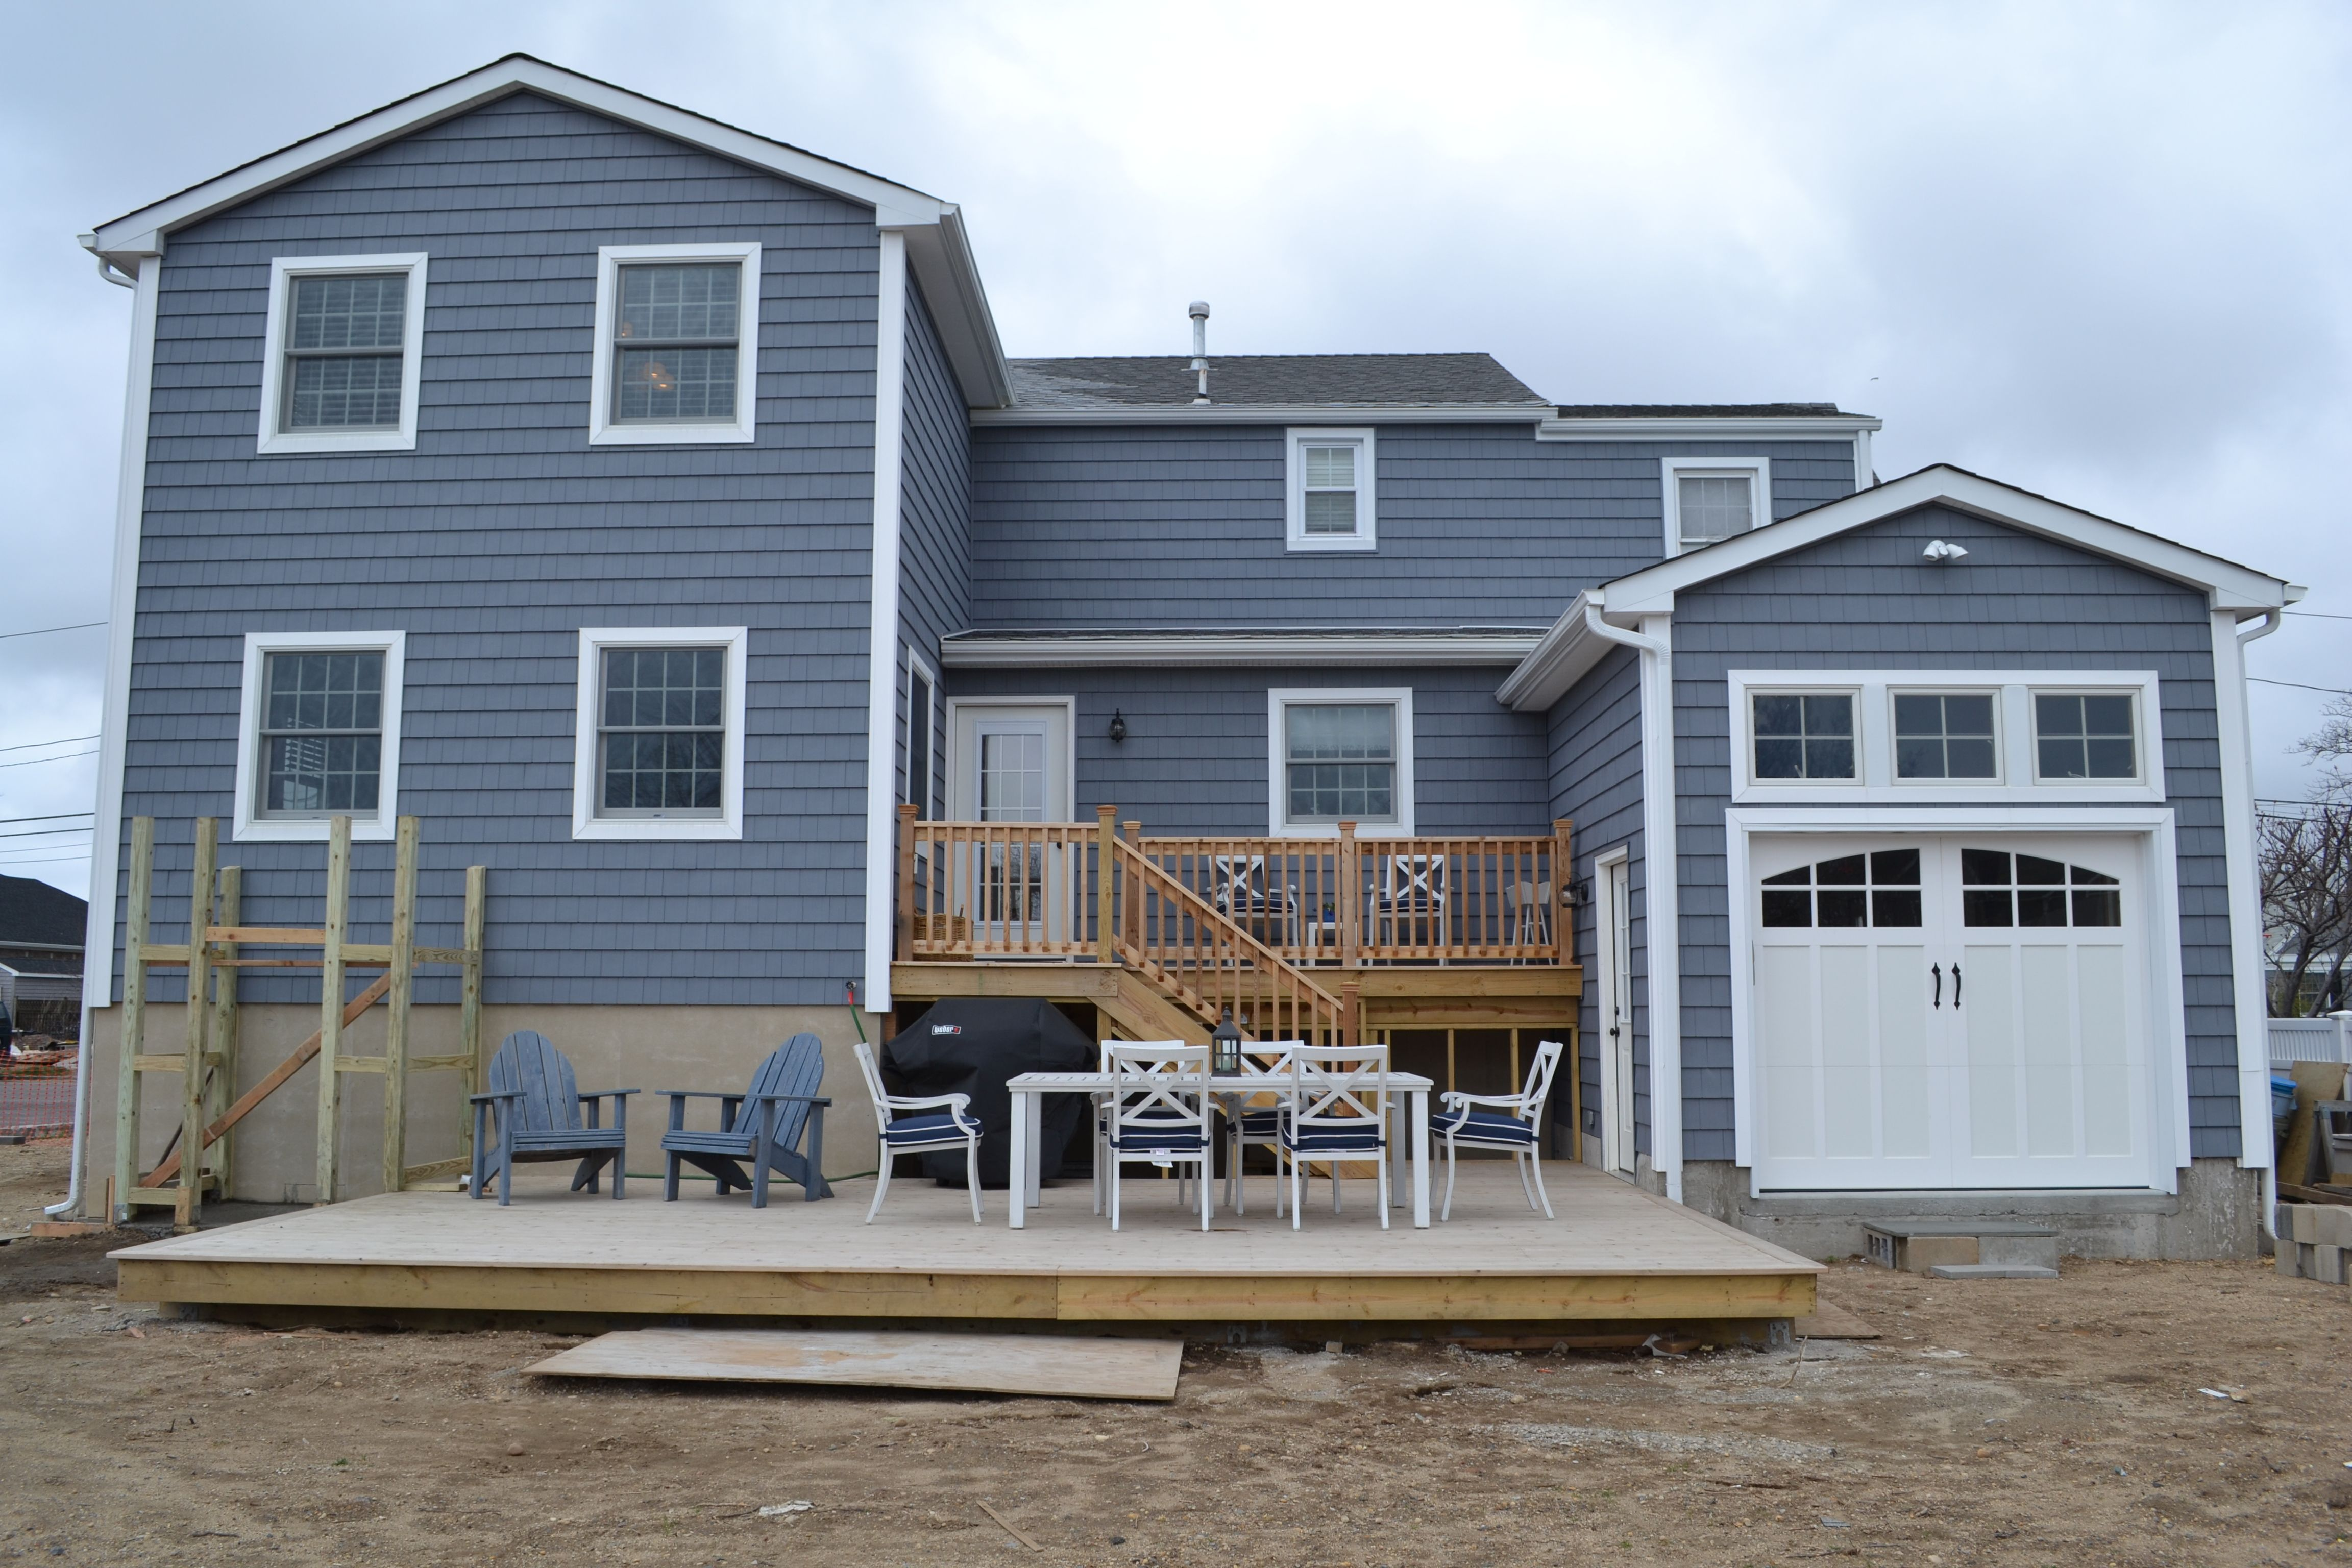 Certainteed Seagrass Blue Siding House Exterior House Colors